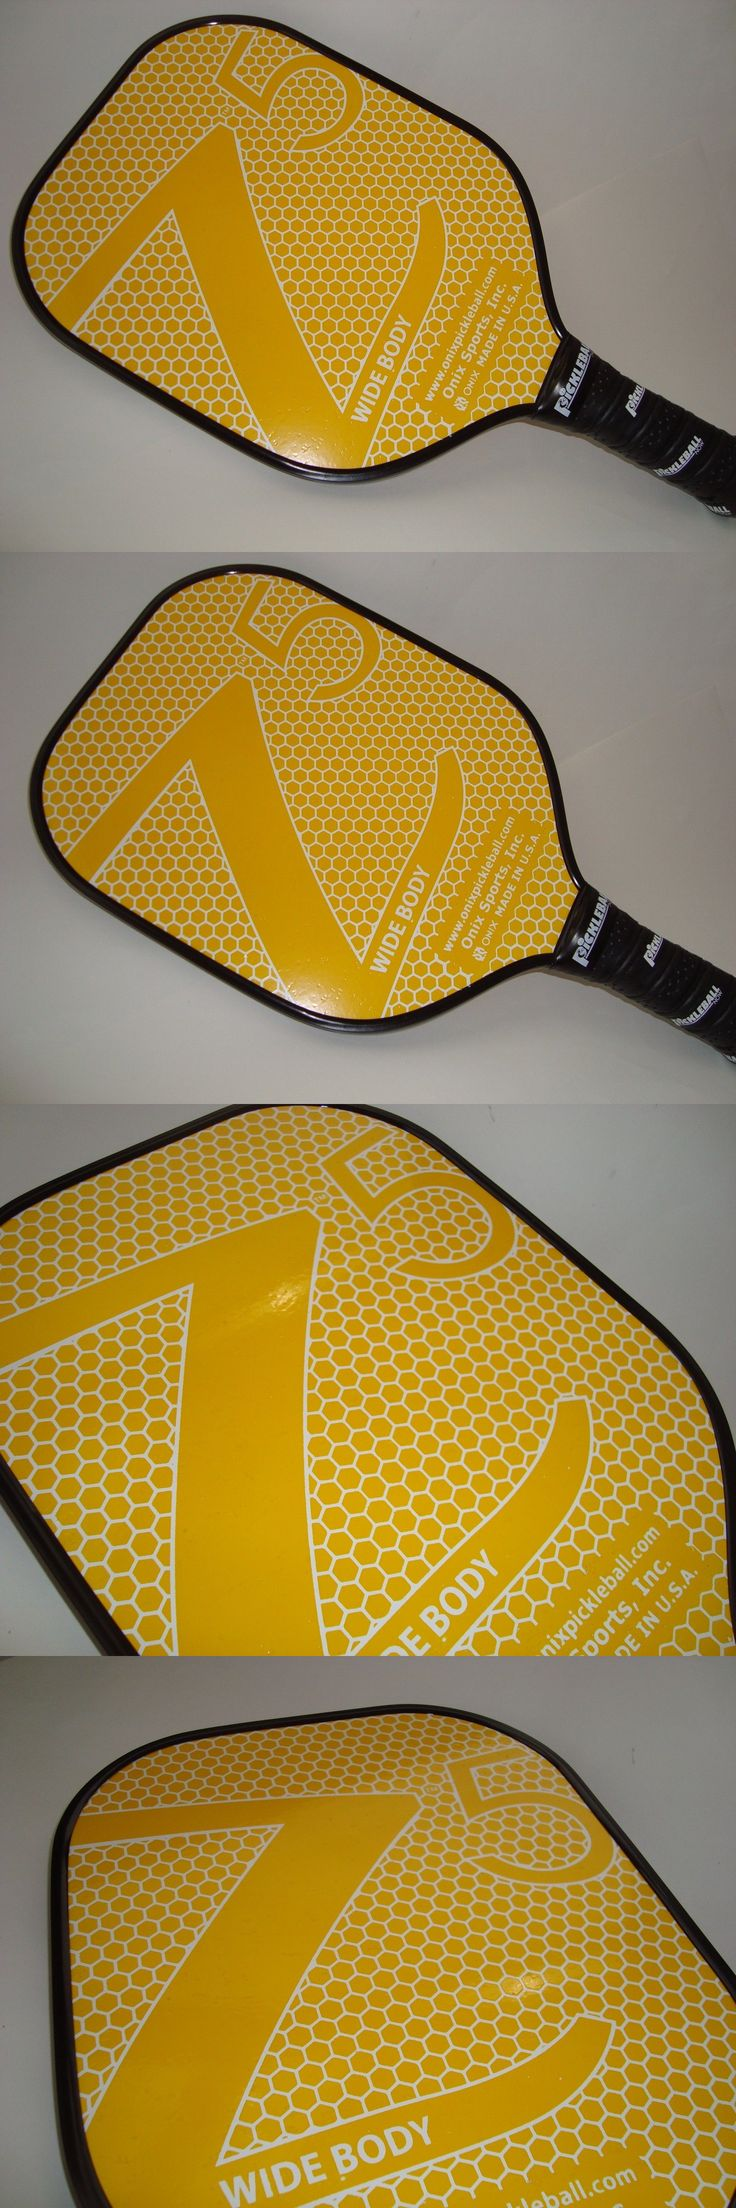 Other Tennis and Racquet Sports 159135: New Onix Z5 Composite Pickleball Paddle Nomex Core Strong Light Yellow -> BUY IT NOW ONLY: $79.99 on eBay!